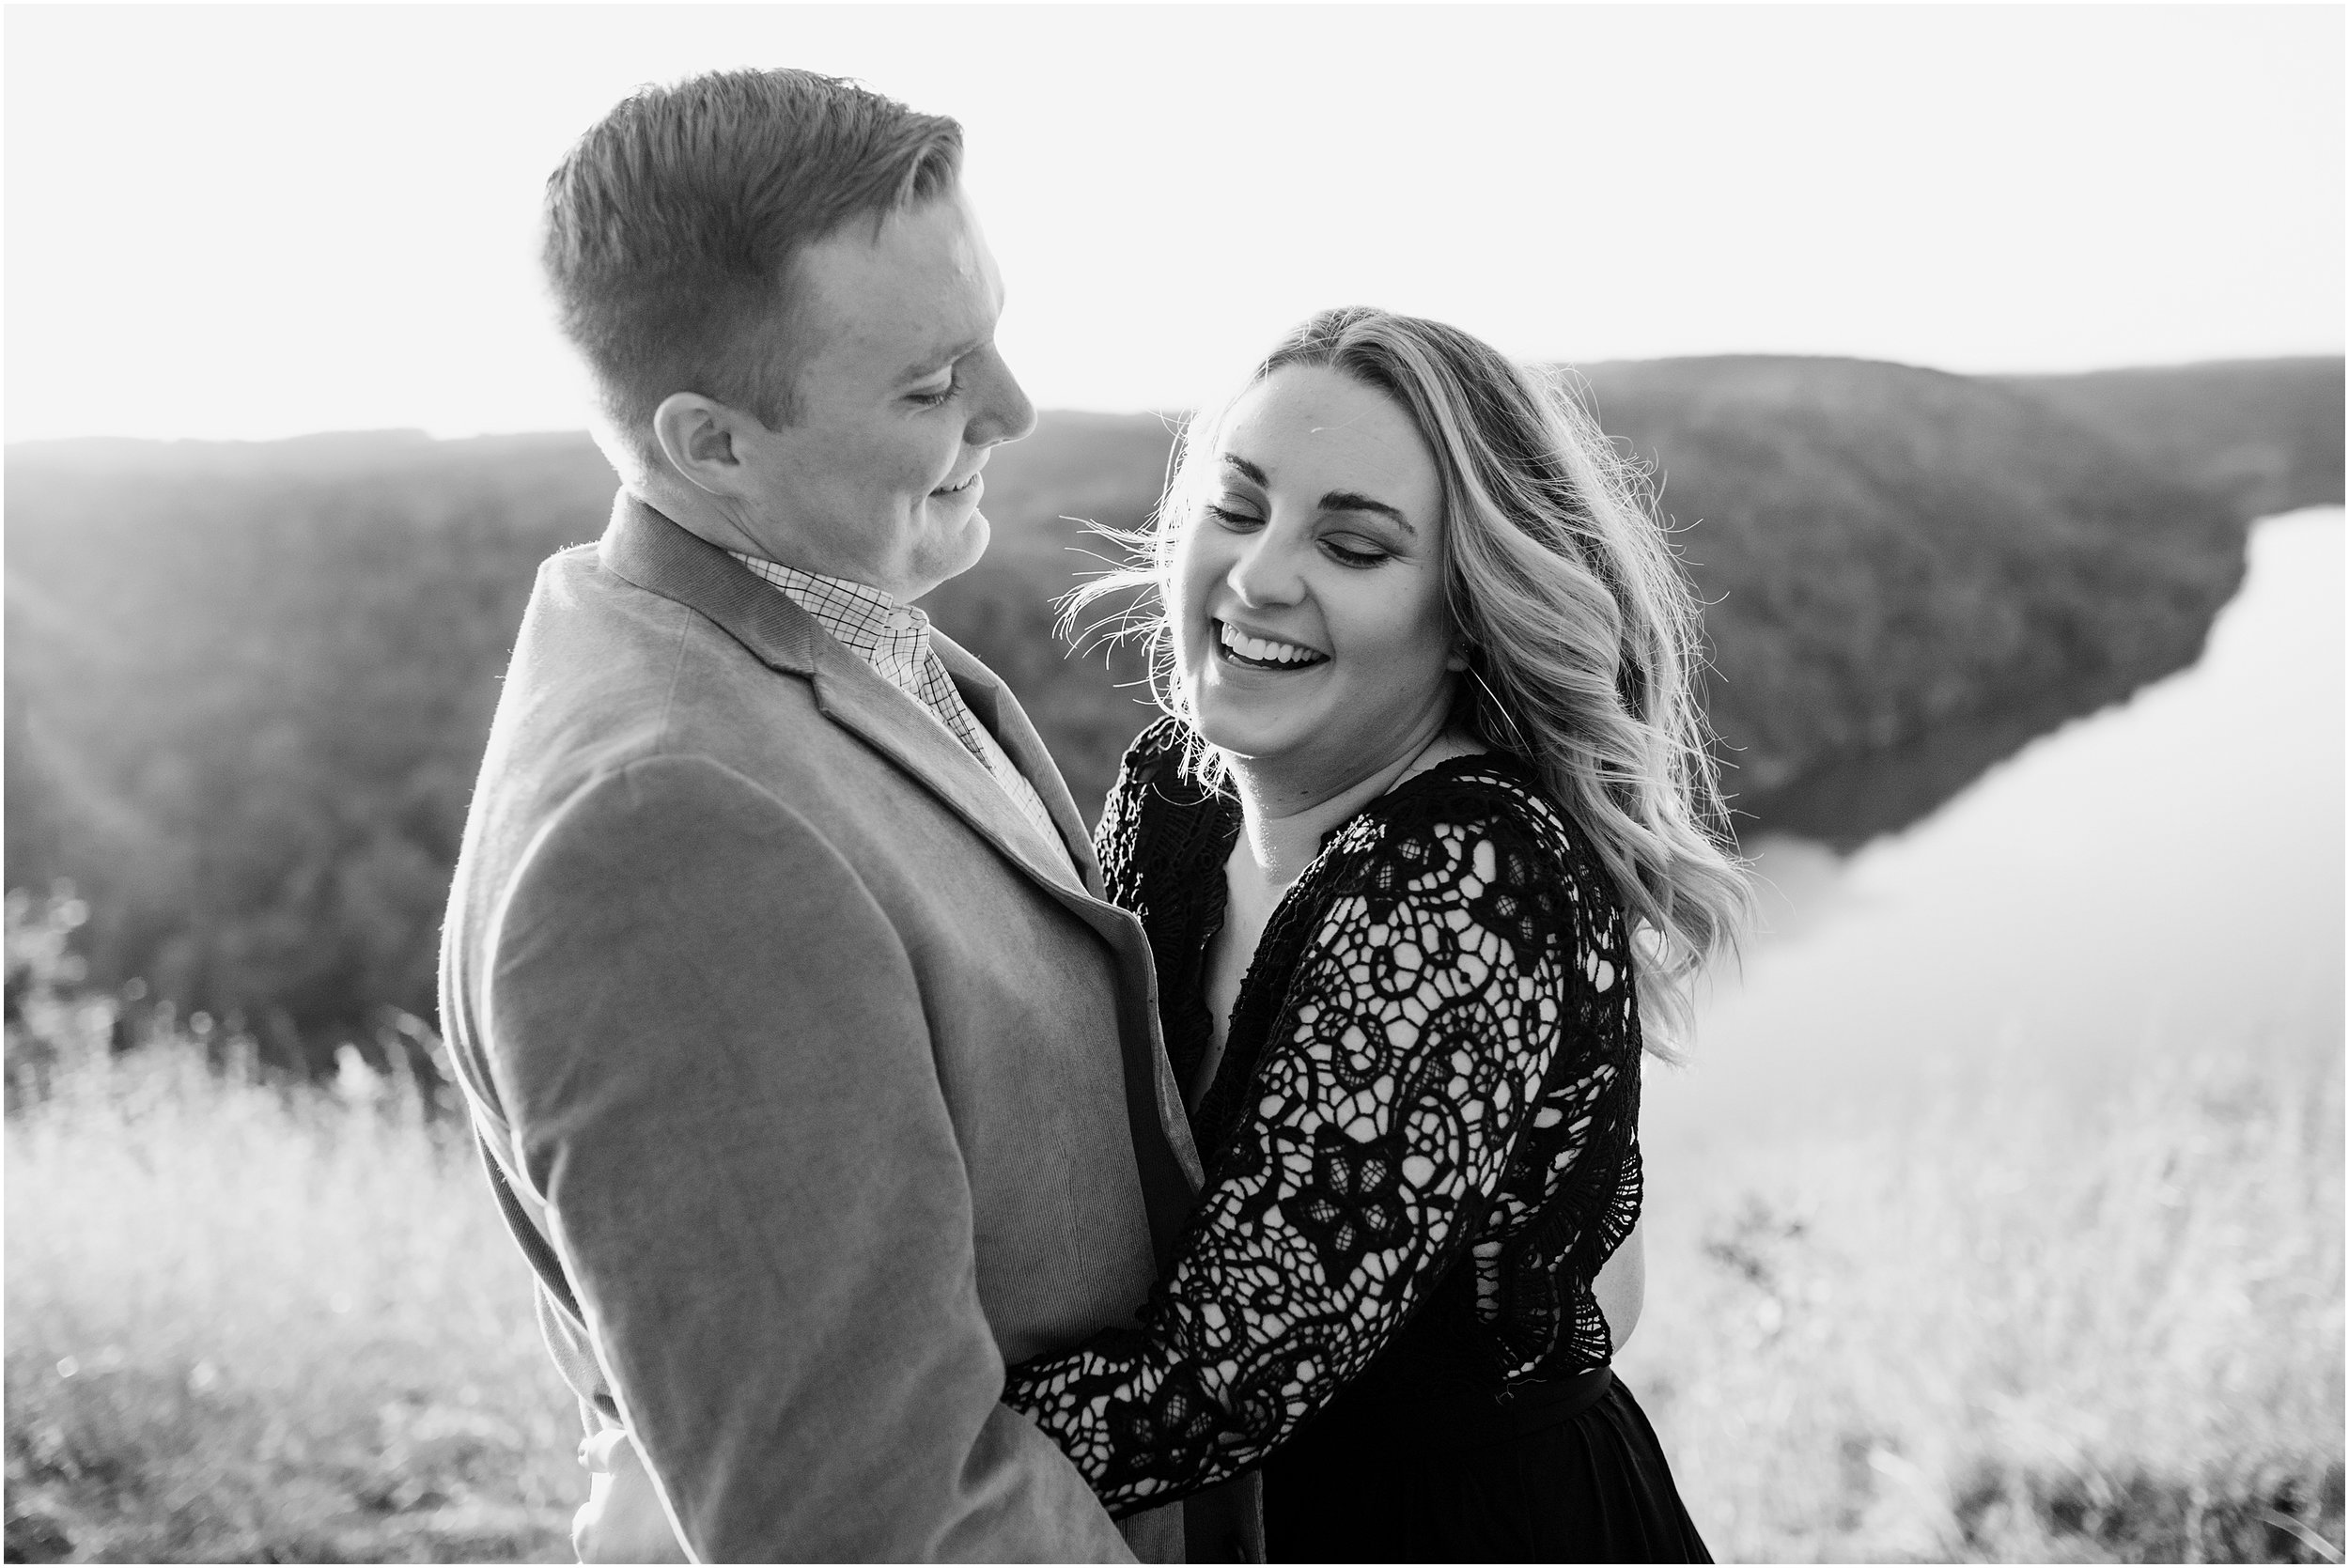 hannah leigh photography Engagement Session Lancaster PA_2328.jpg